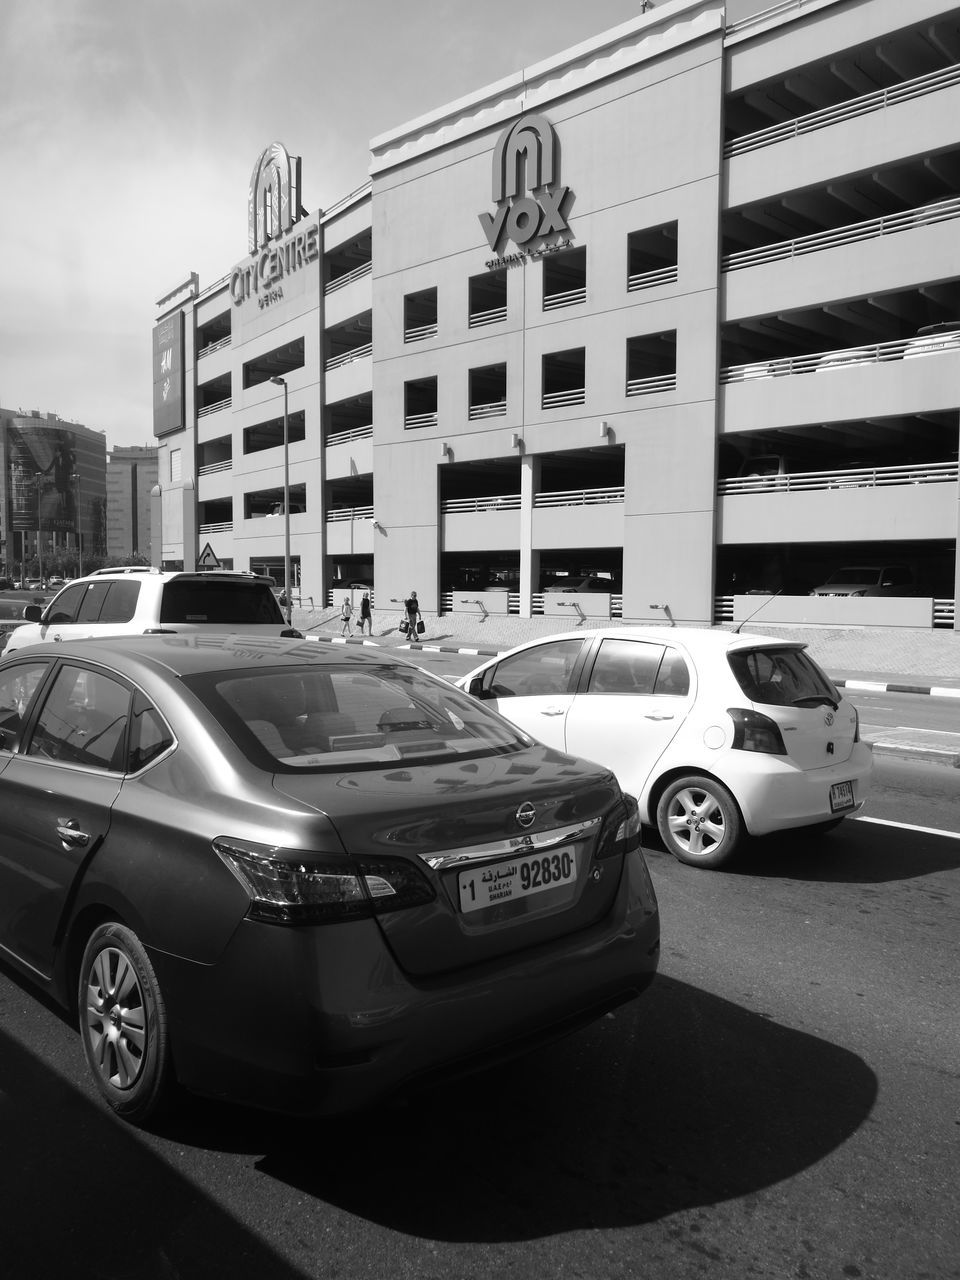 car, transportation, land vehicle, building exterior, architecture, built structure, mode of transport, city, outdoors, day, modern, no people